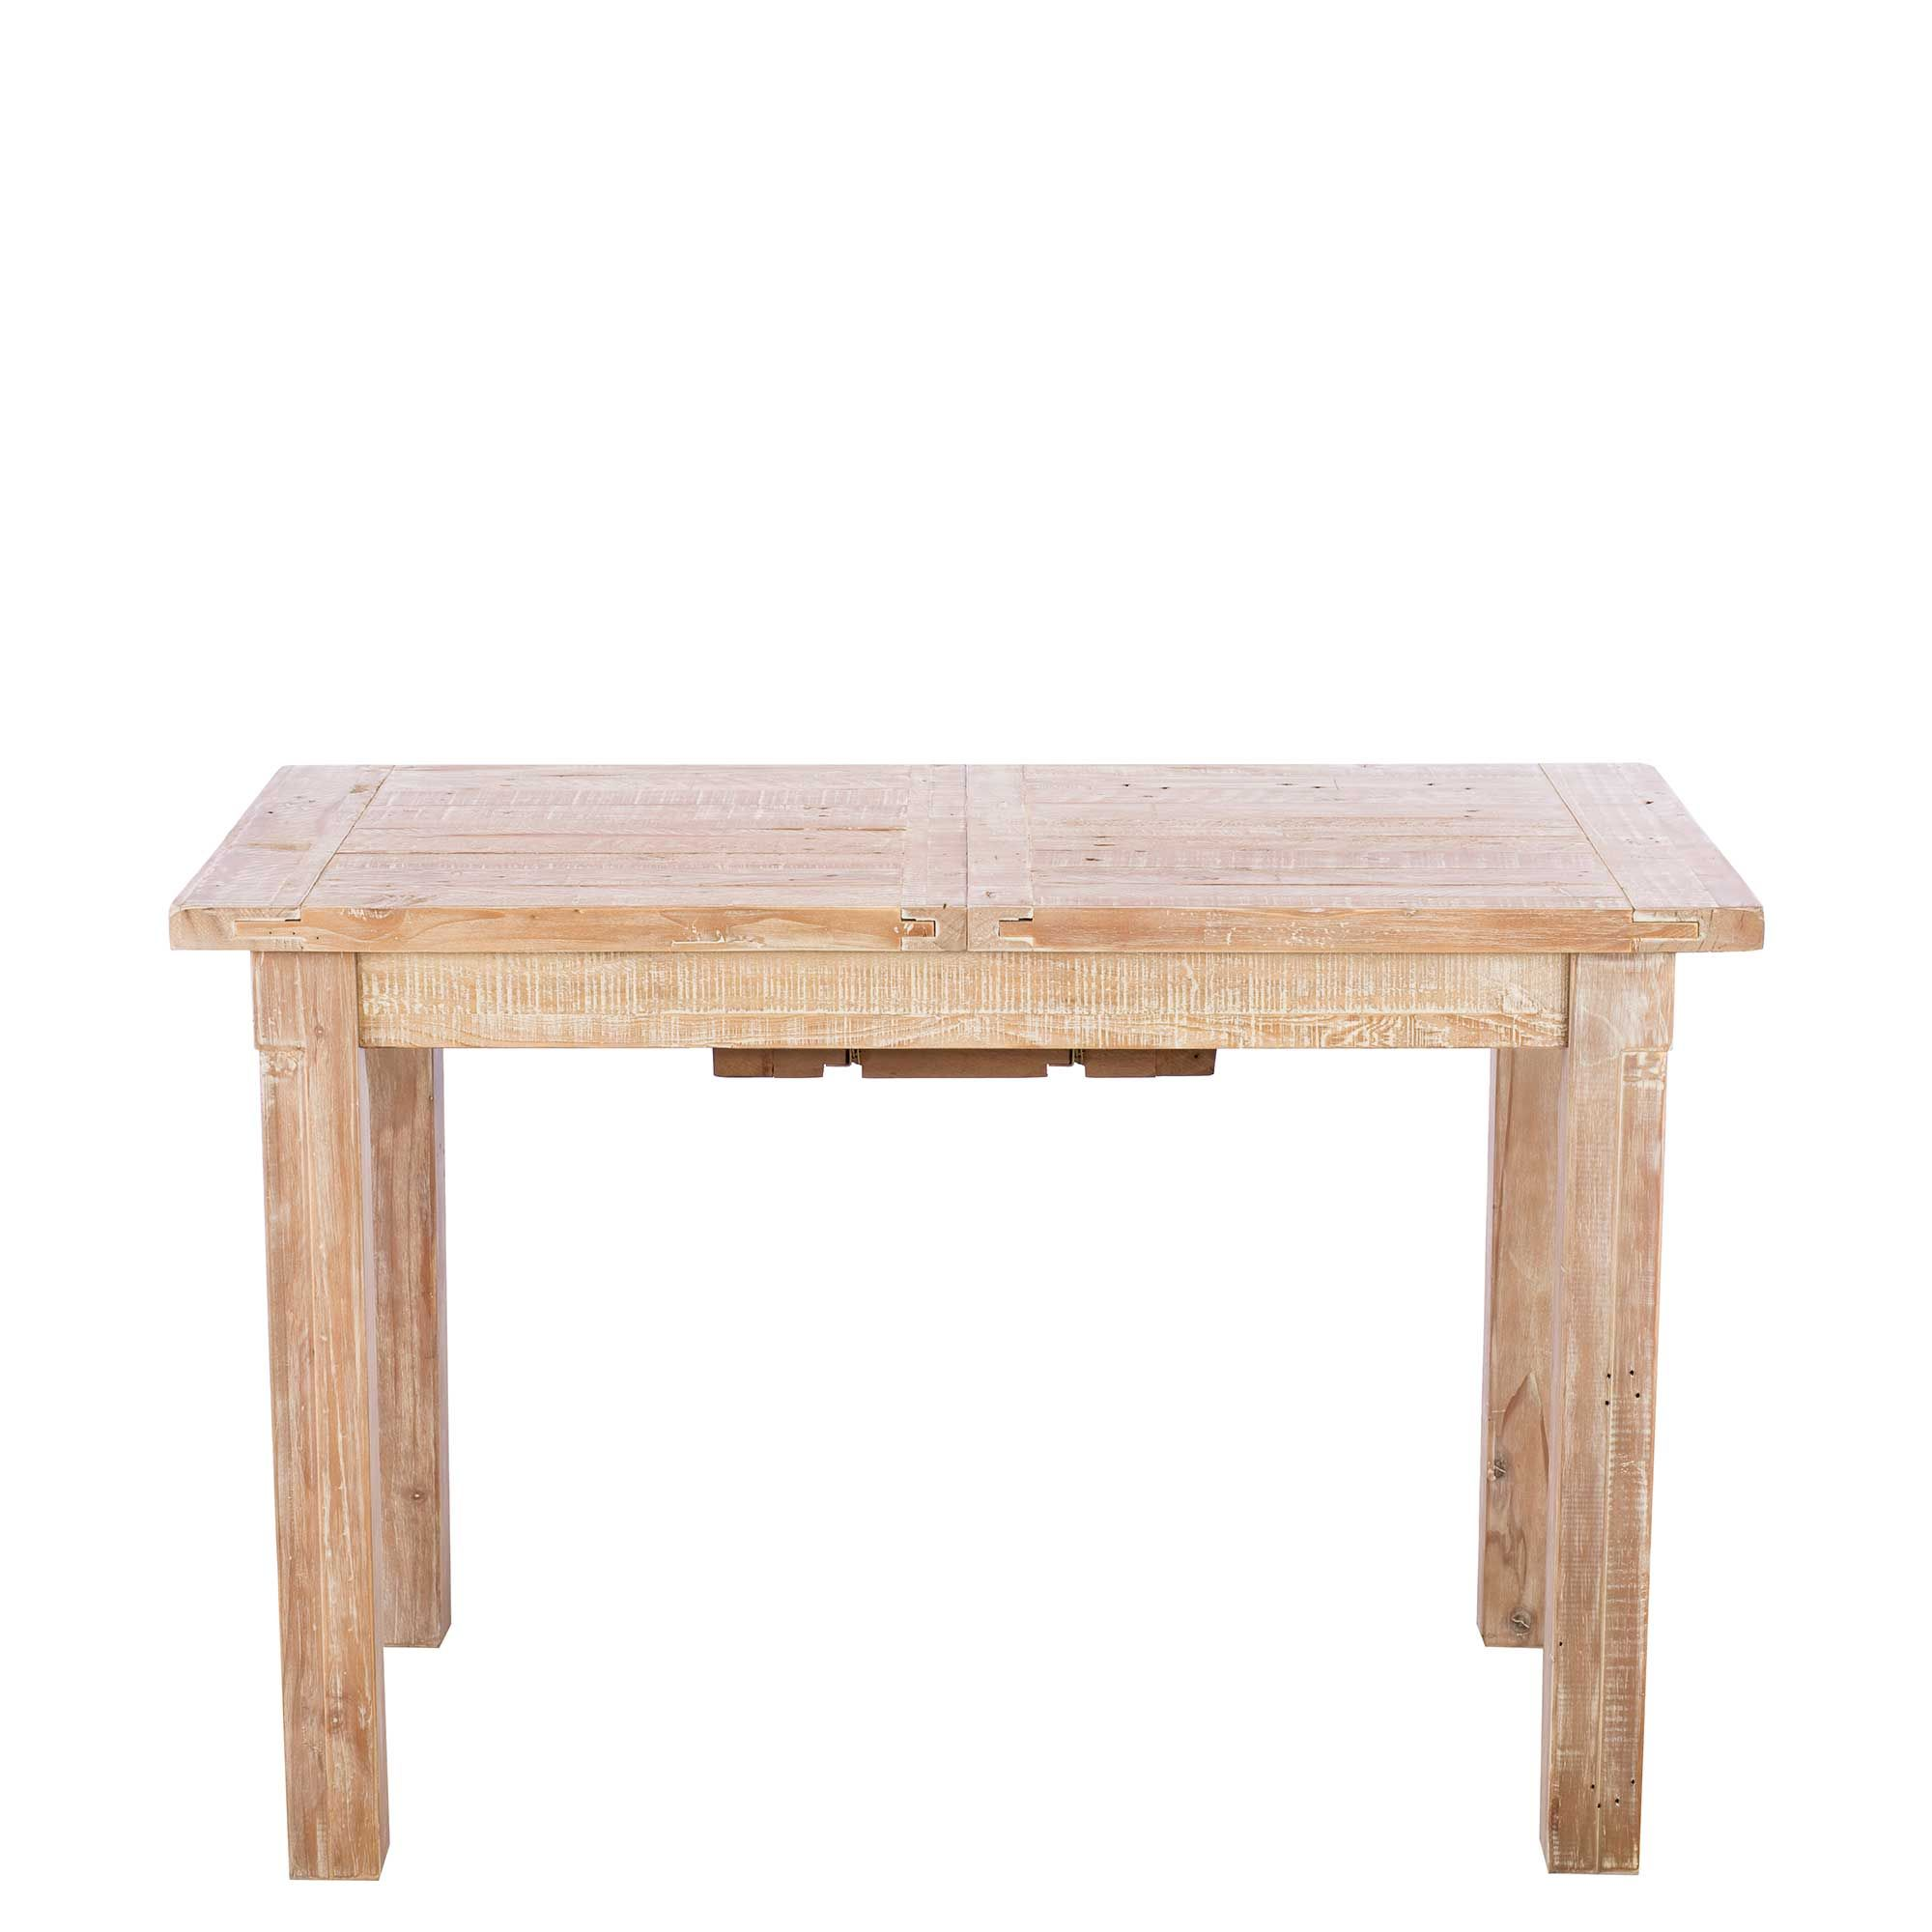 White Wash Wood Dining Table: Austen Reclaimed Wood 120cm Extending Dining Table, White